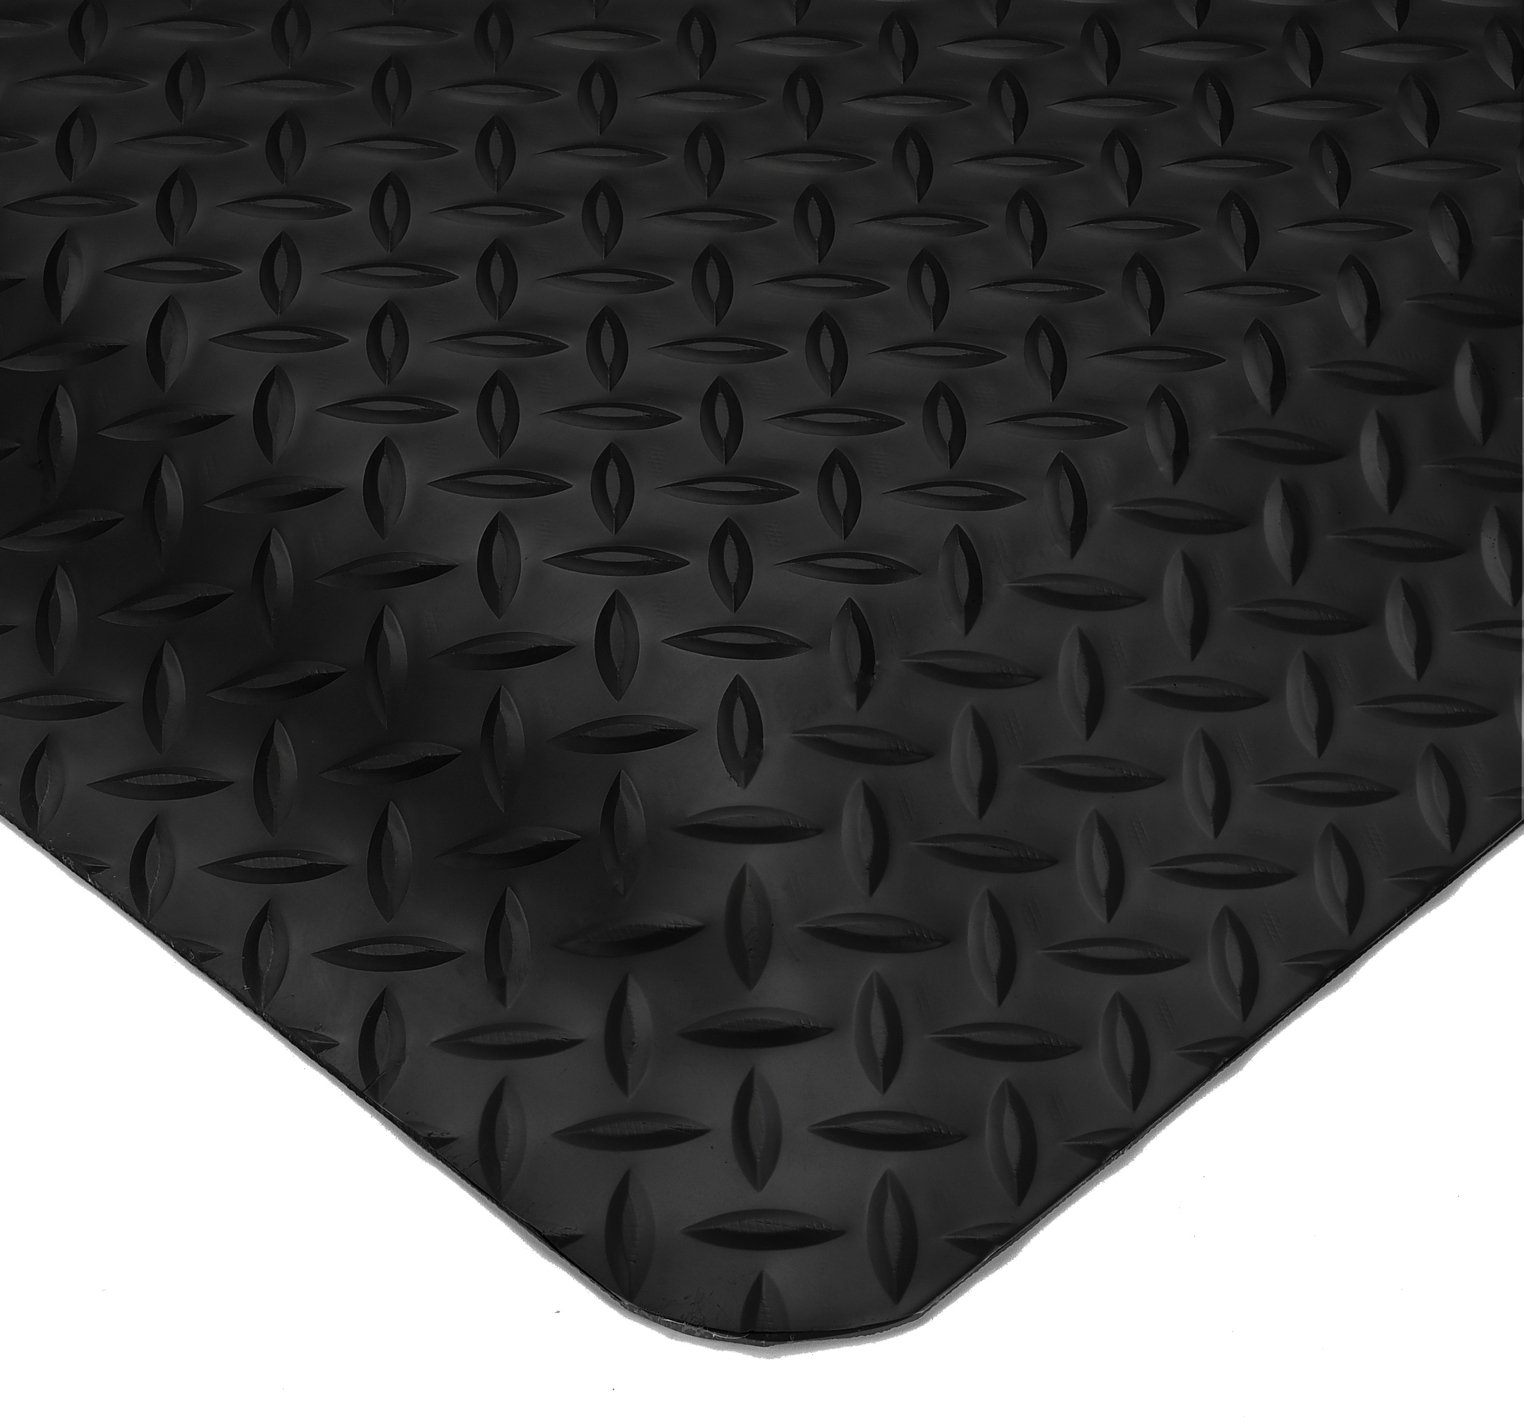 Wearwell PVC 497 Smart Diamond-Plate Medium Duty Anti-Fatigue Mat, Tapered Edges, for Dry Areas, 3' Width x 5' Length x 5/8'' Thickness, Black by Wearwell